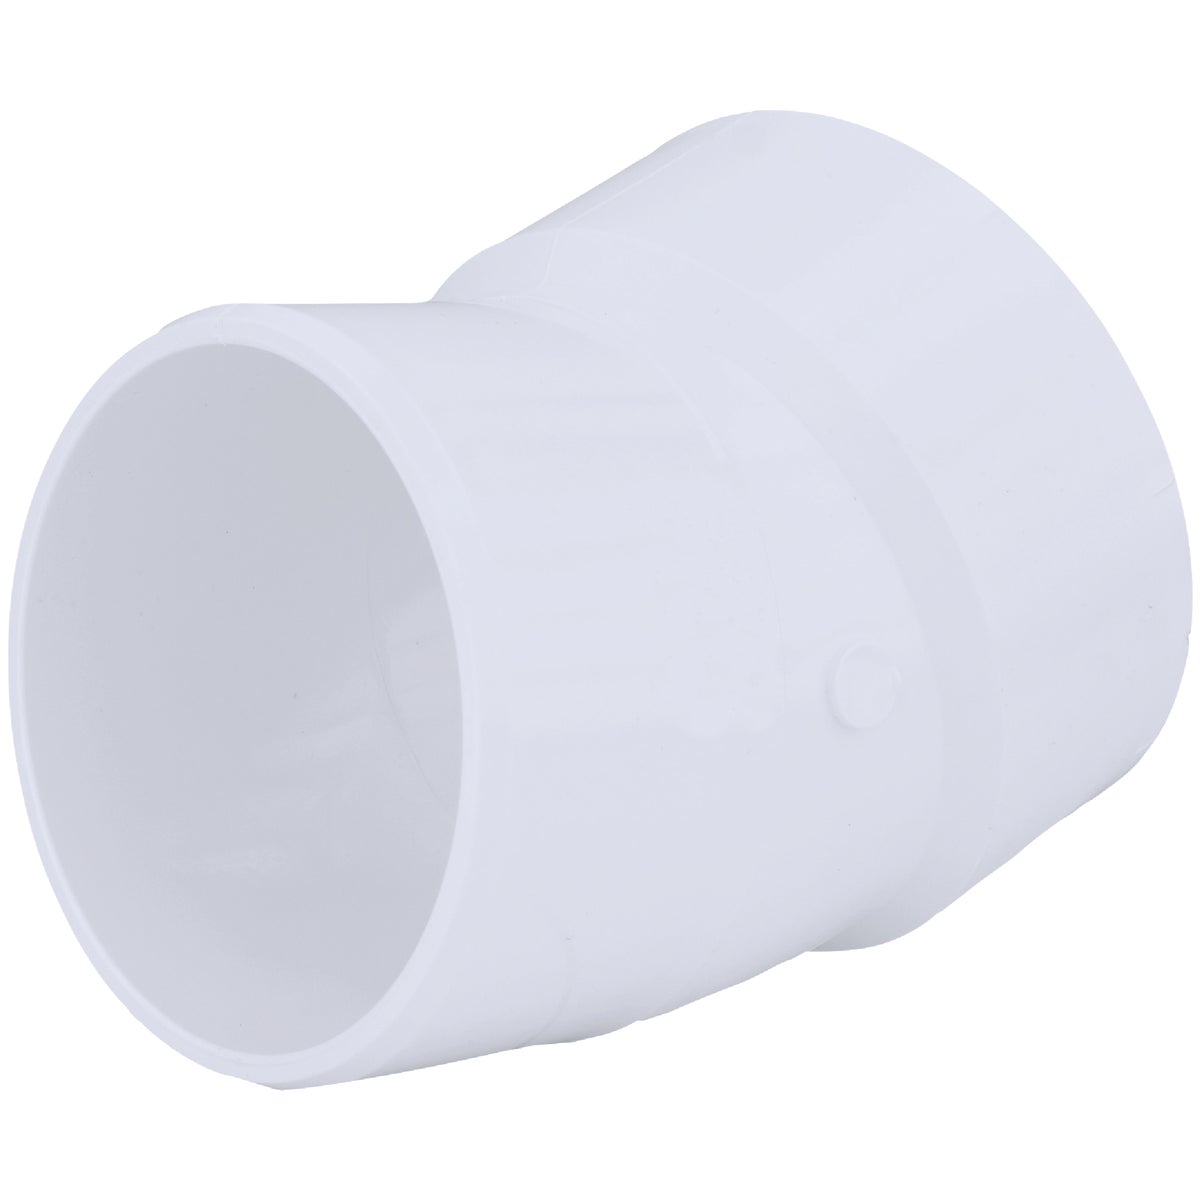 "4"" 22-1/2D STREET ELBOW - 75840 by Genova Inc  Pvc Dwv"